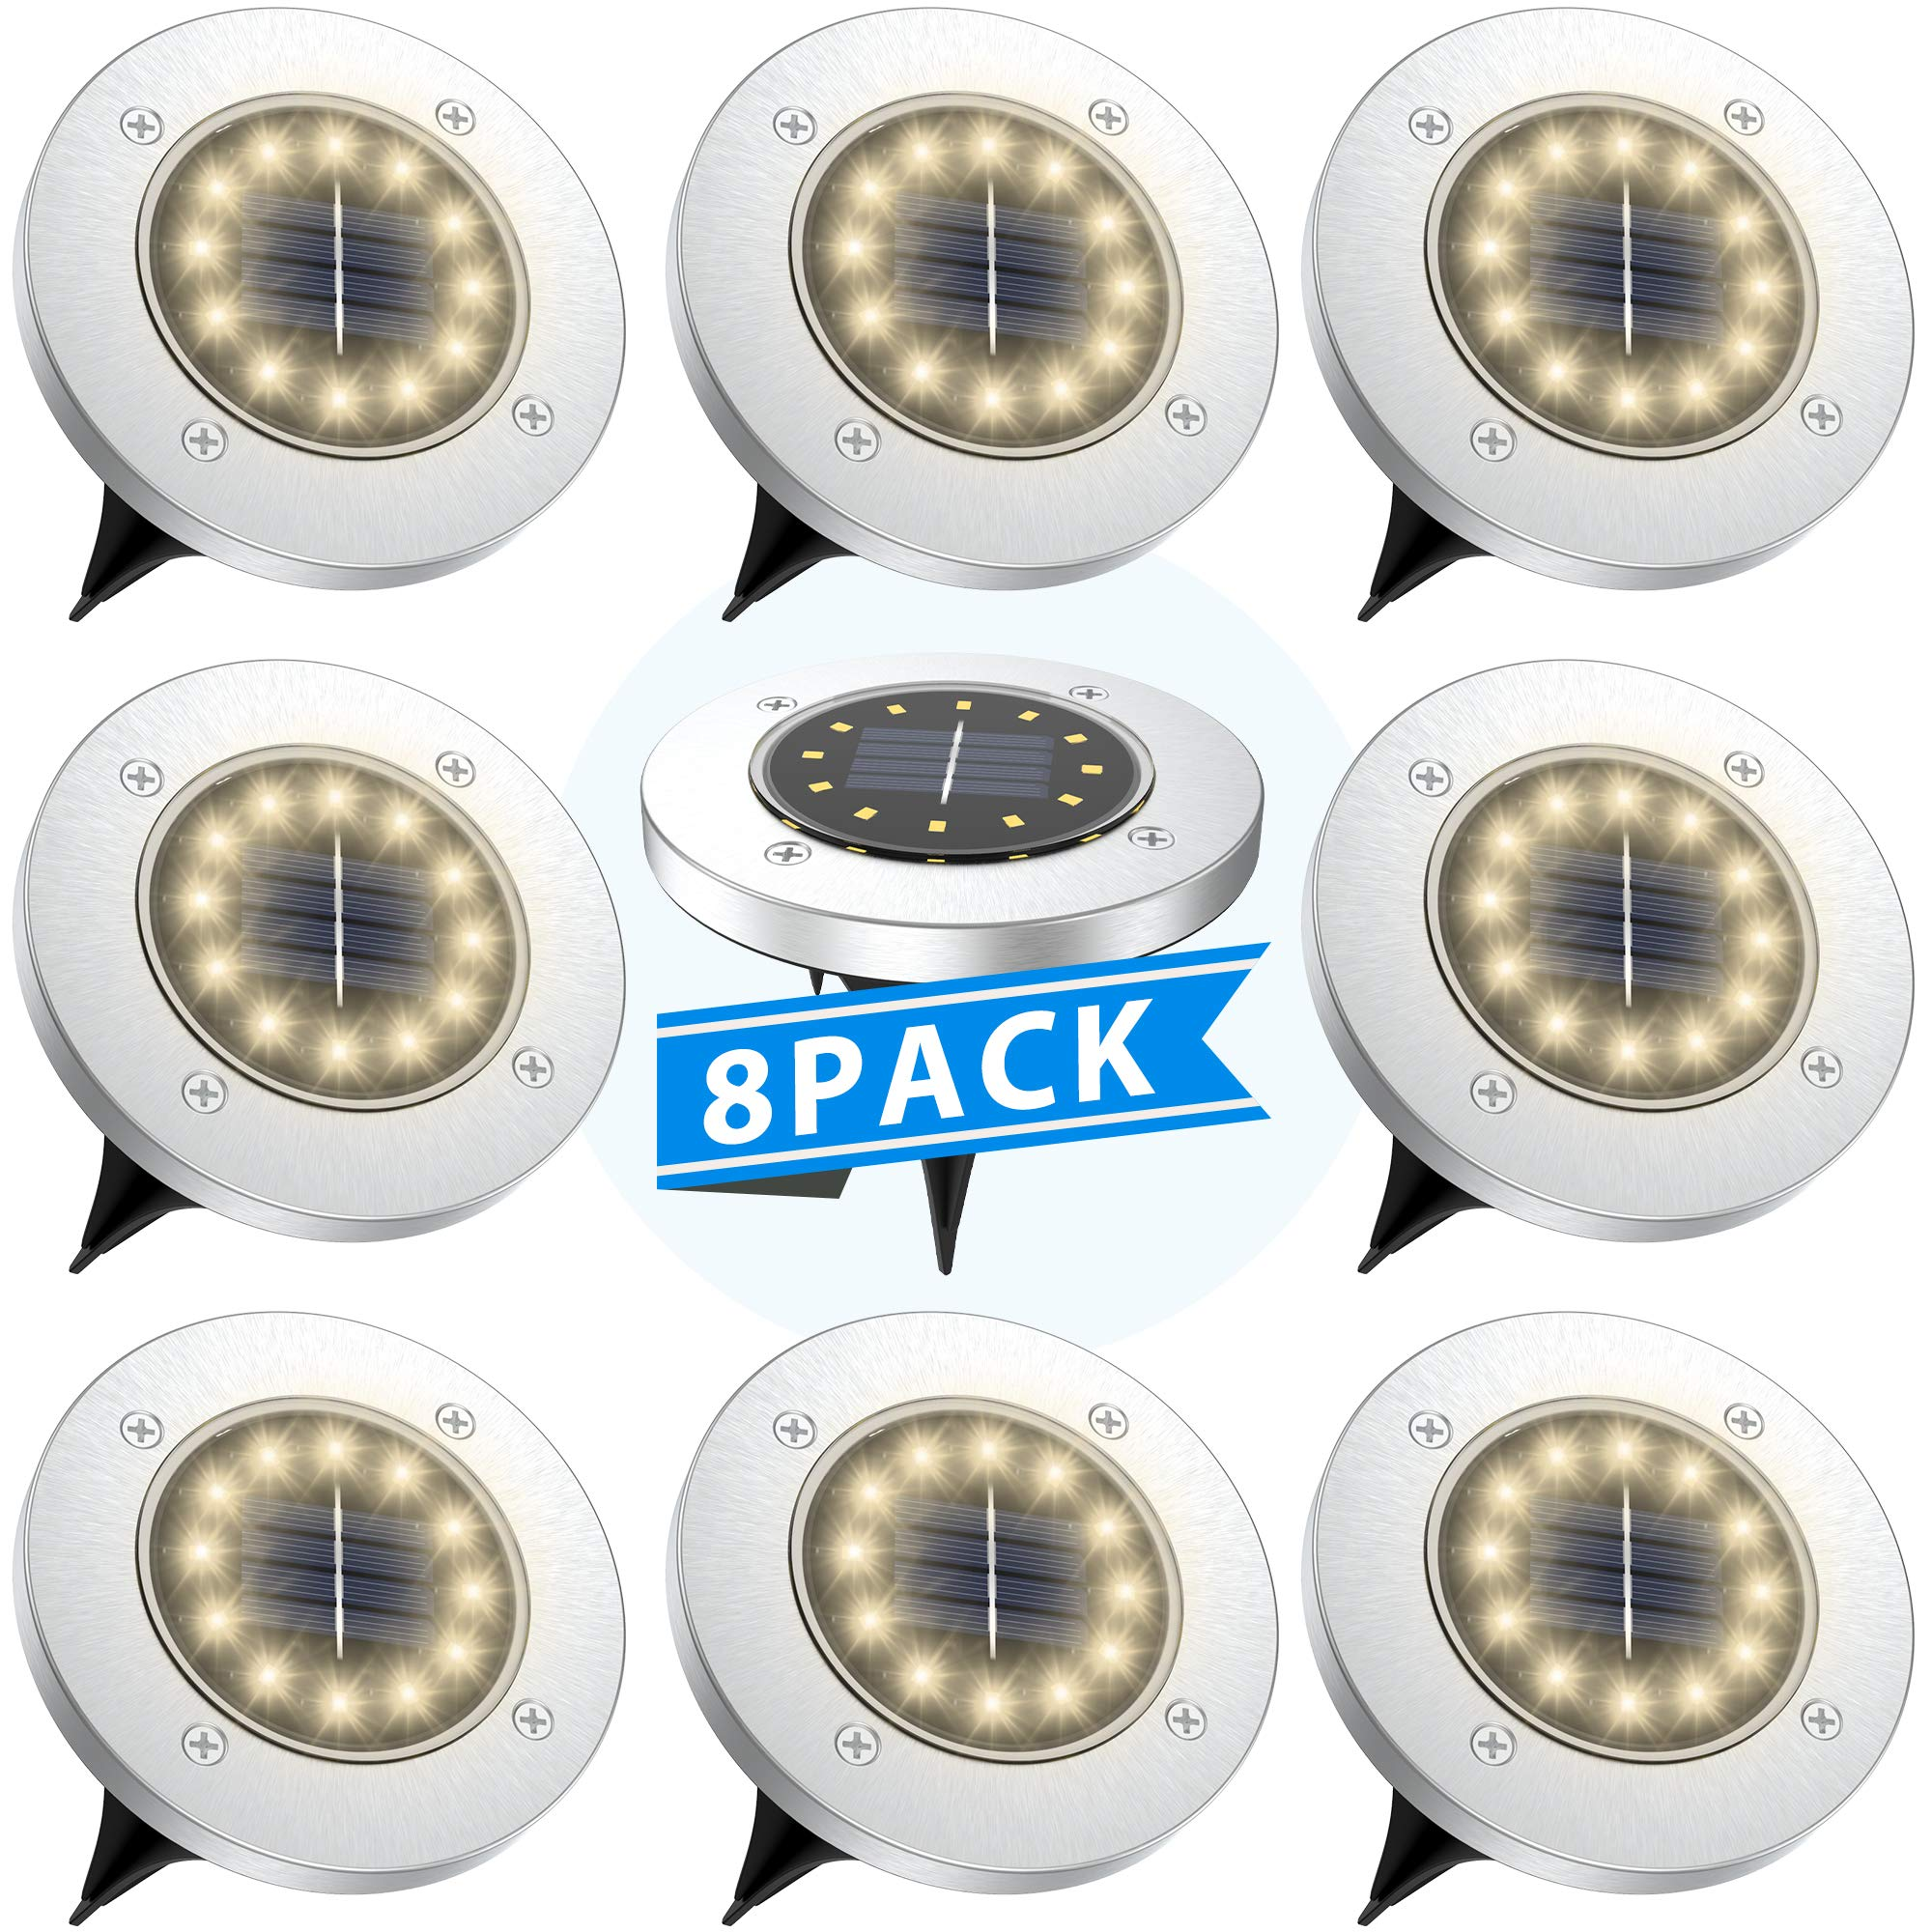 Tesecu Solar Disk Lights 12 LED Solar Ground Lights Outdoor Waterproof Stainless Steel in Ground Solar Lights for Walkway Pathway Lawn Patio Yard Garden- Warm White(8 Pack) by Tesecu